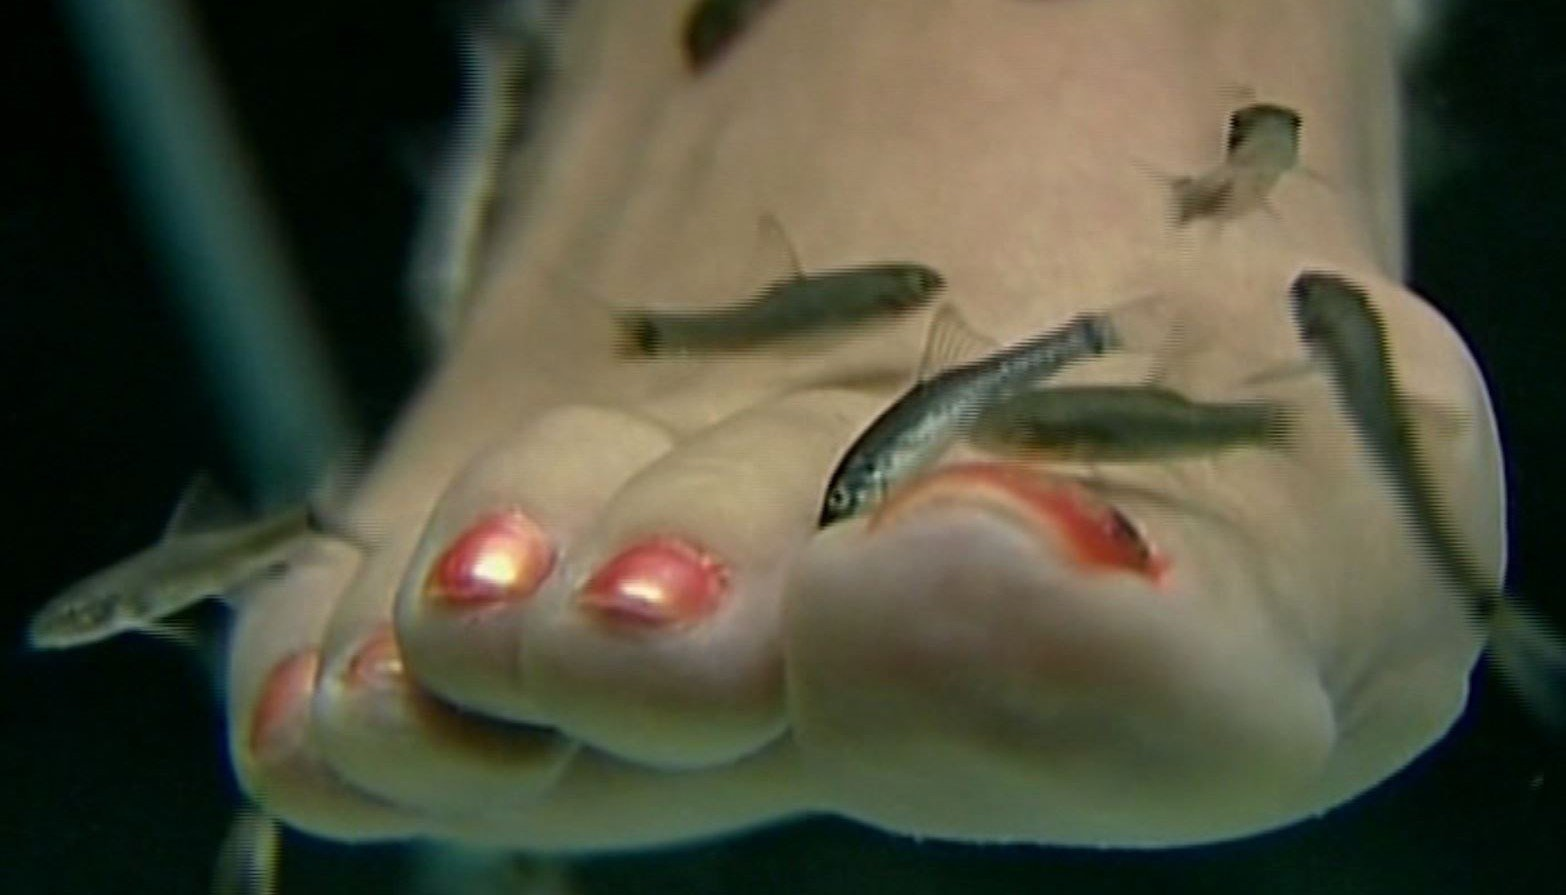 Woman loses toenails after fish pedicure